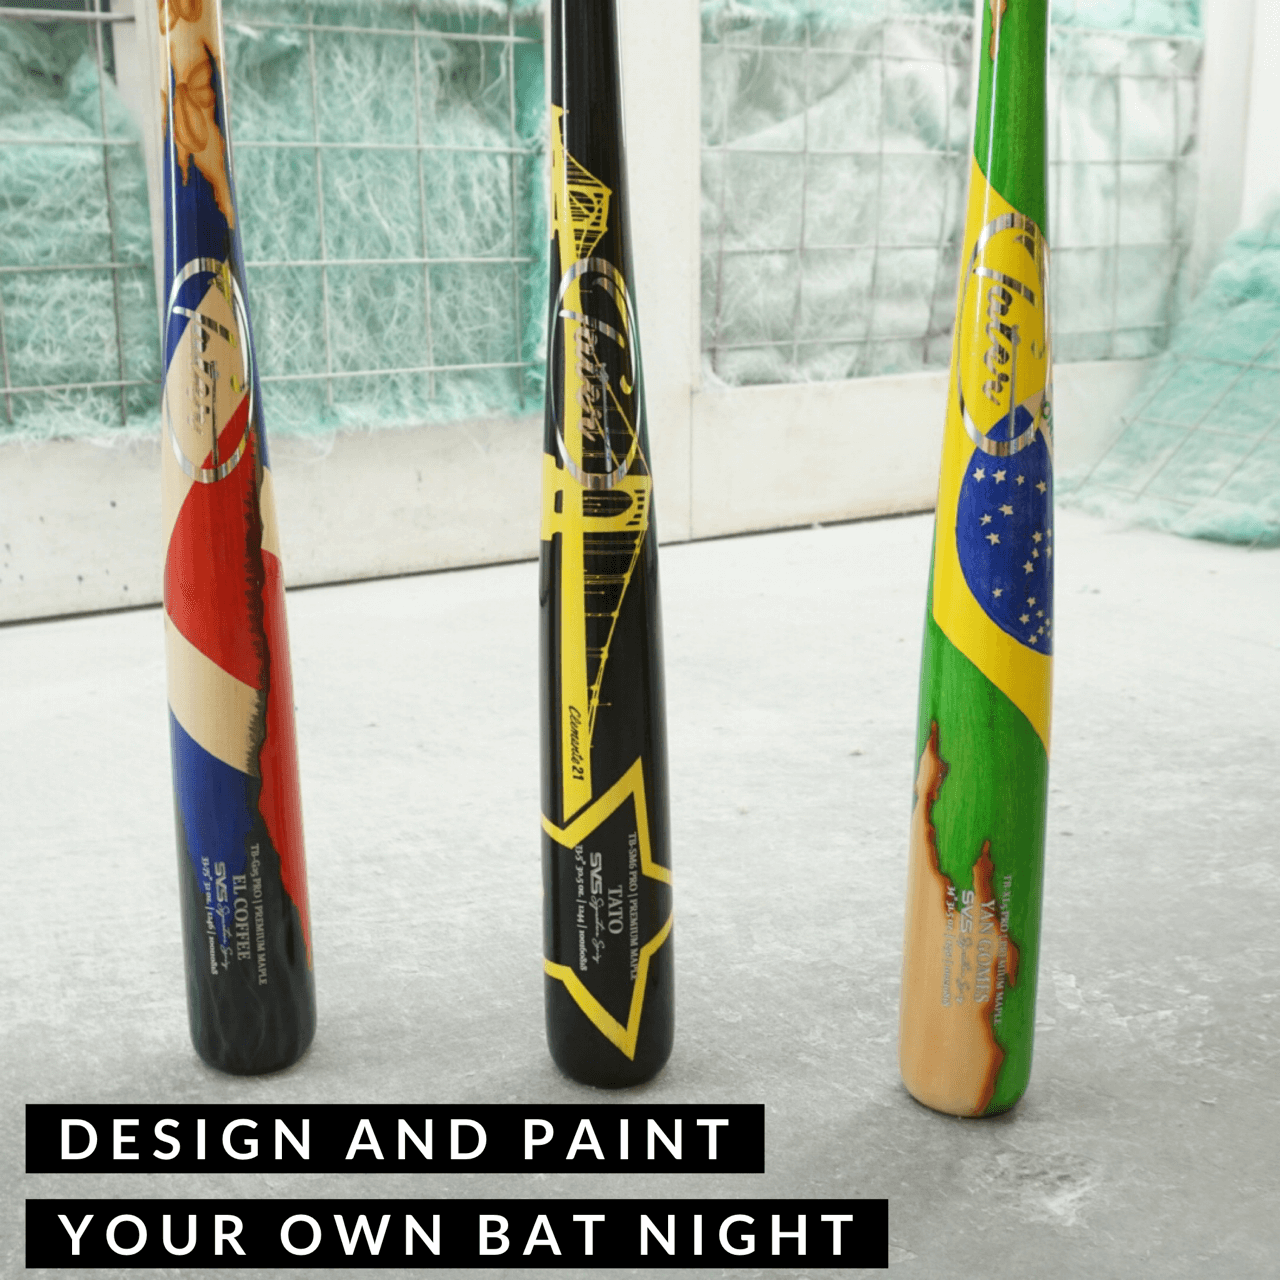 PAINT YOUR OWN BAT NIGHT